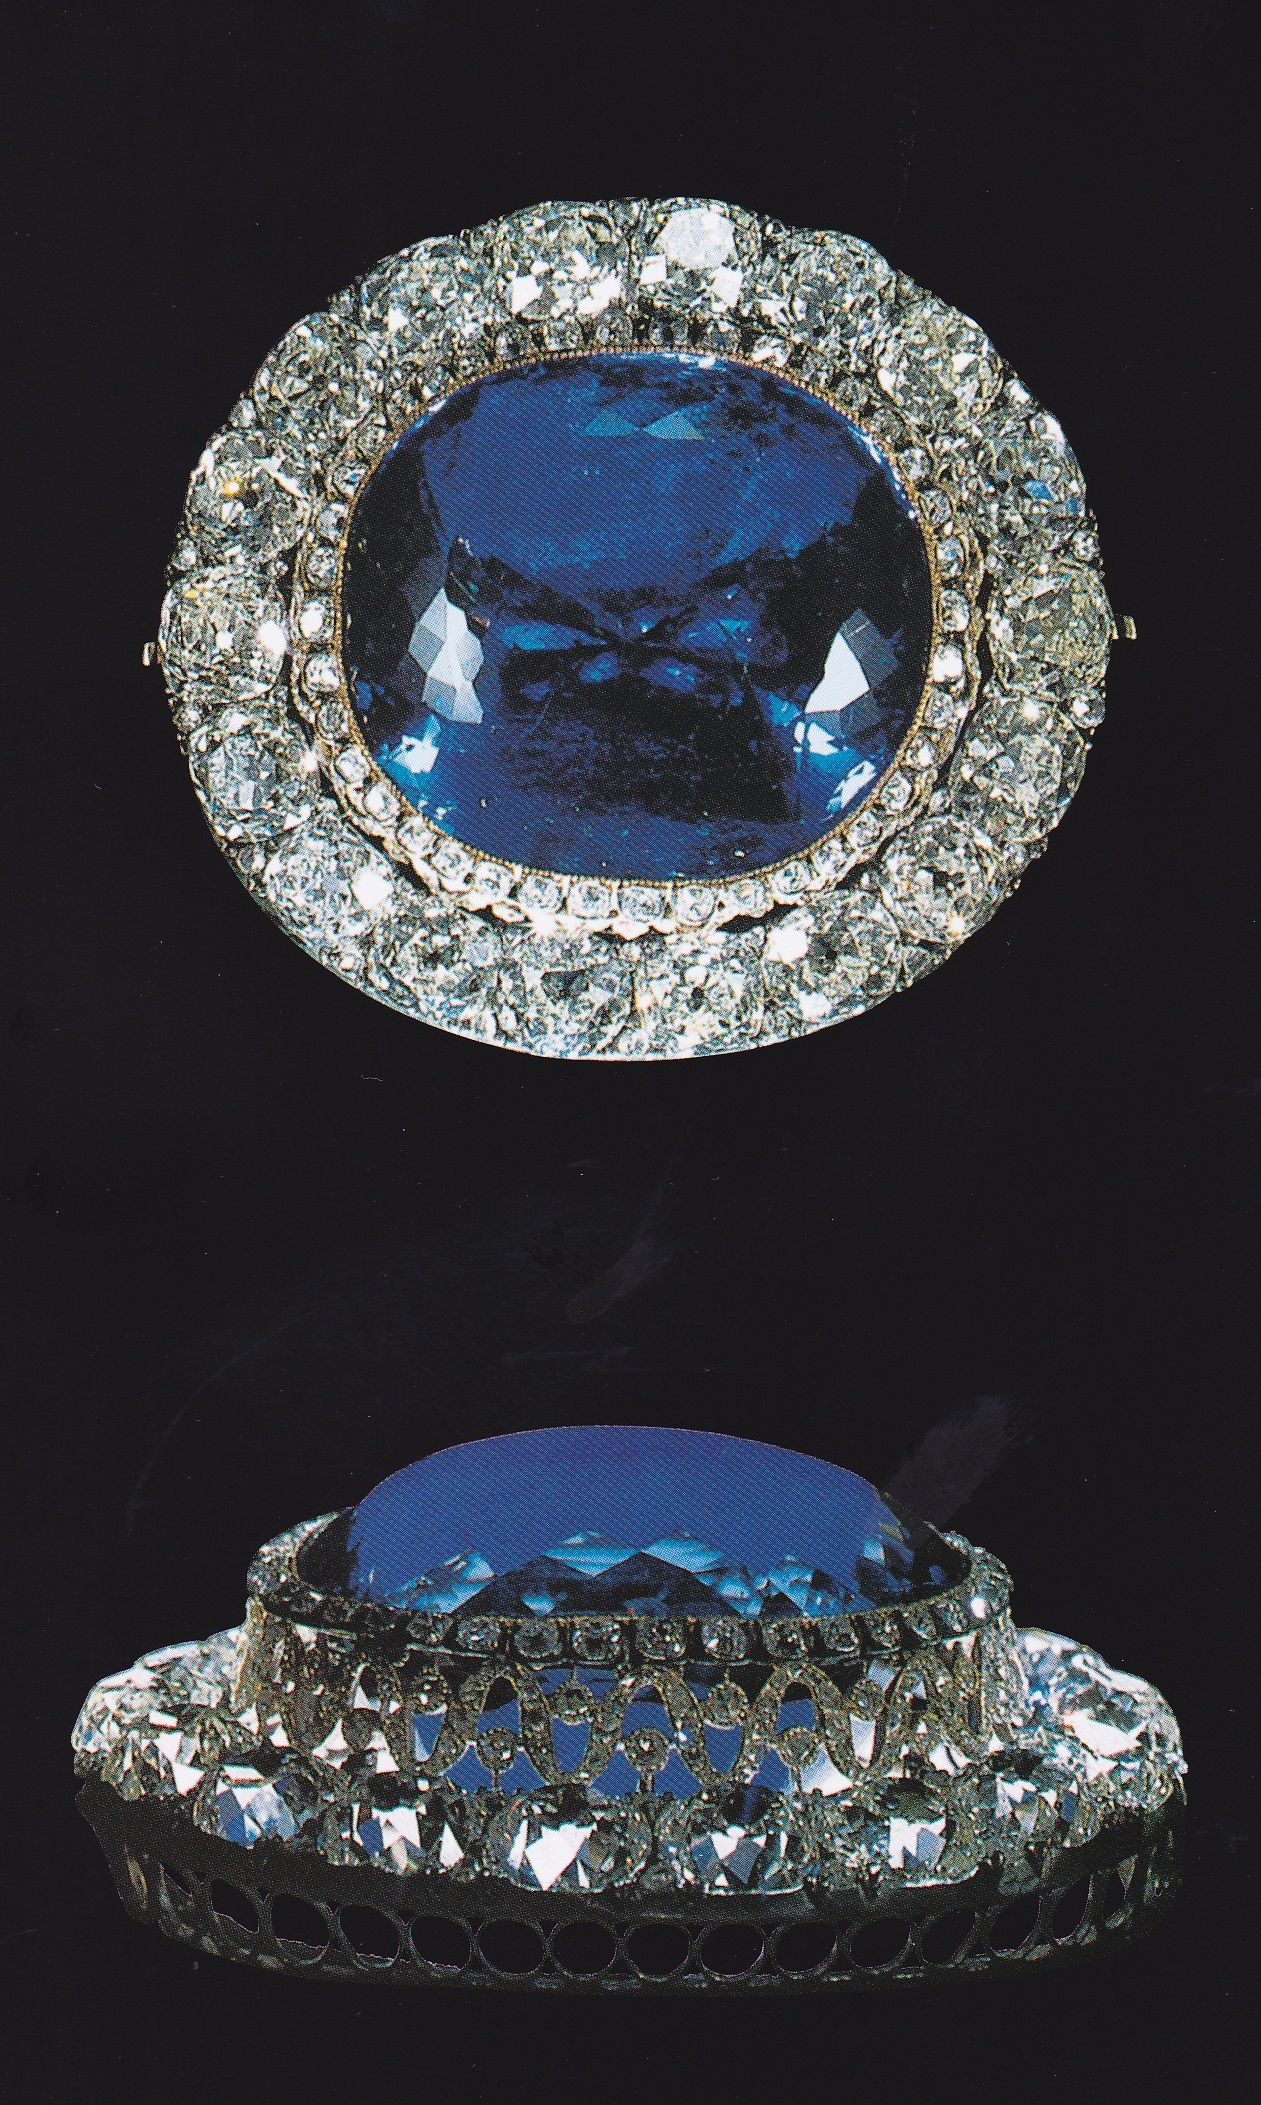 An Antique Sapphire Jewel Found In The Dowager Empress